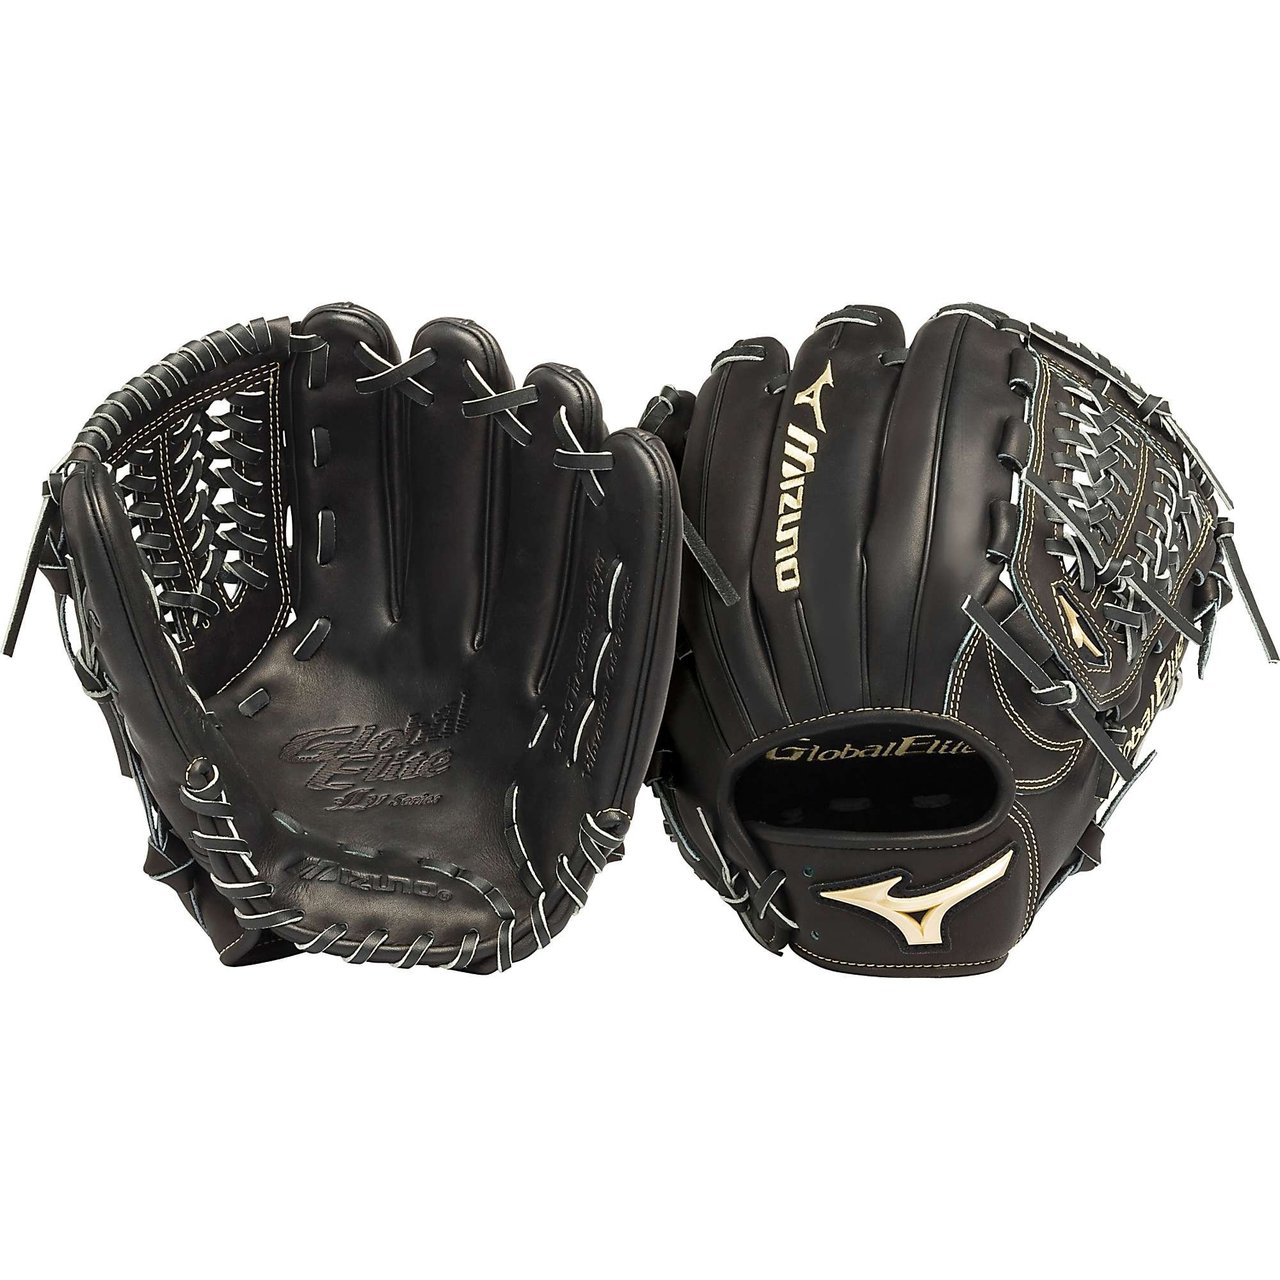 mizuno-gge51vbk-global-elite-vop-11-75-infield-baseball-glove-right-handed-throw GGE51VBK-Right Handed Throw Mizuno 041969457092 Mizuno GGE51VBK Global Elite VOP 11.75 Infield Baseball Glove Right Handed